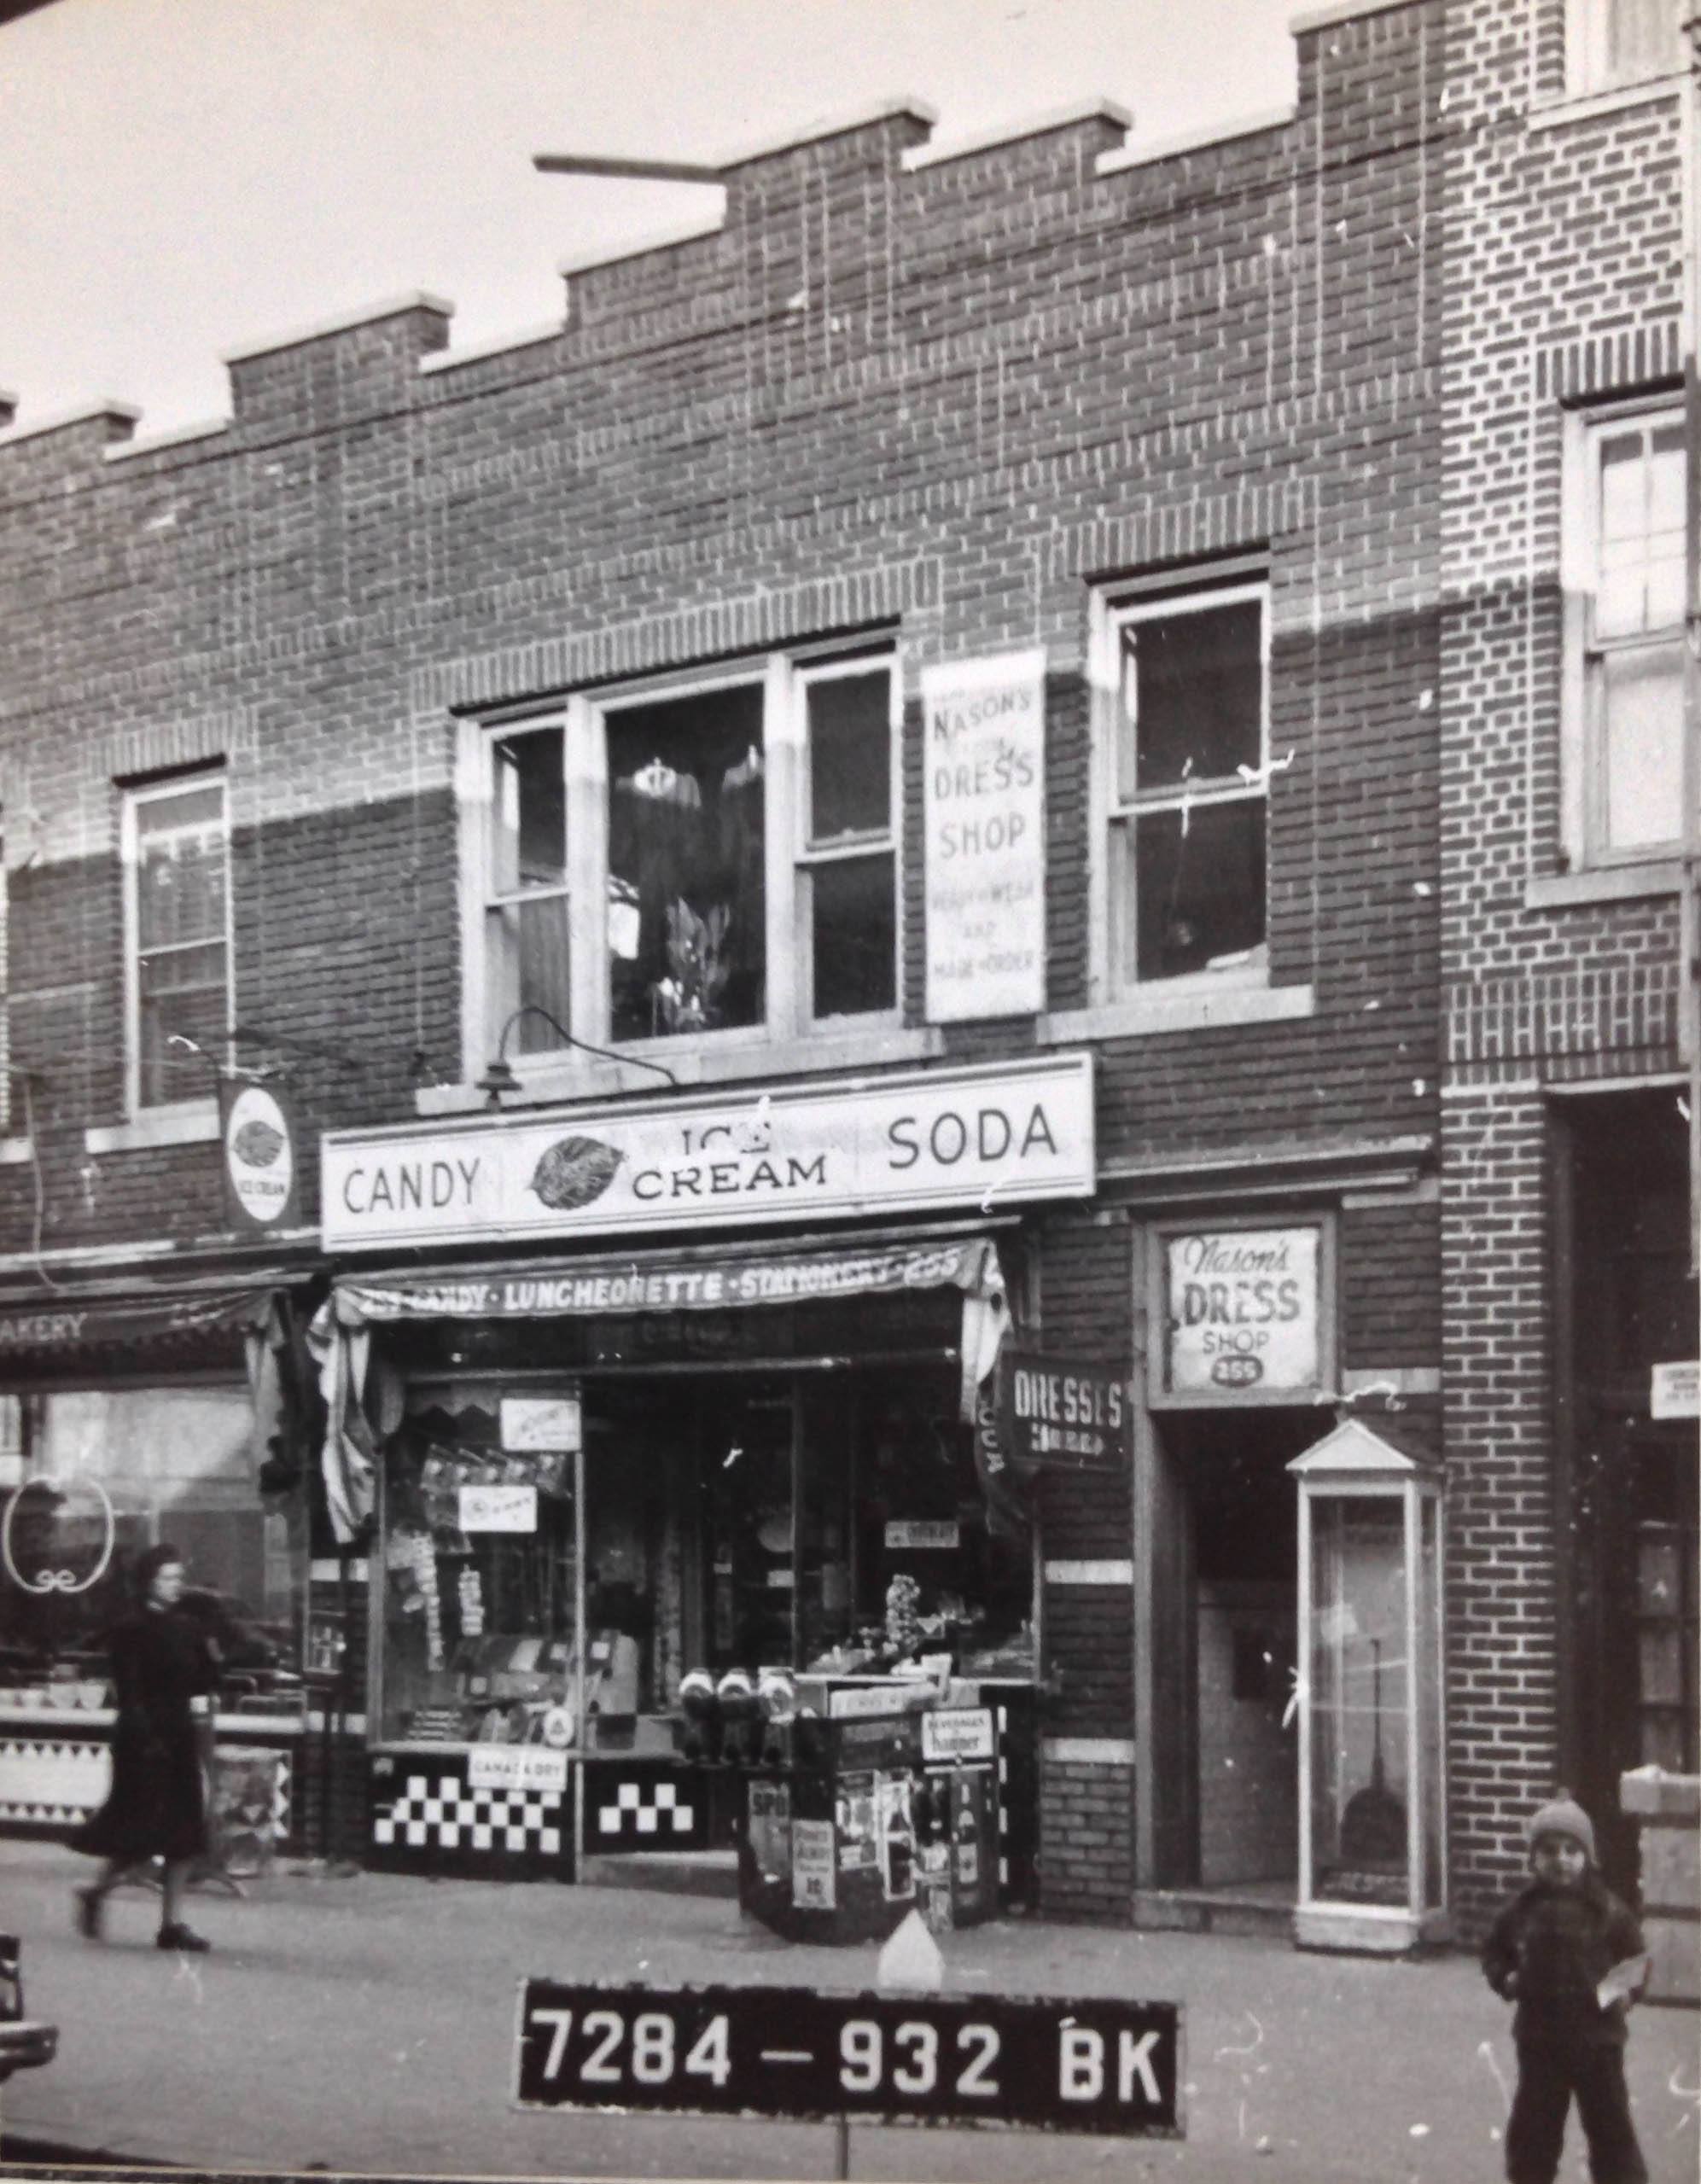 """255 Brighton Beach Avenue, Brooklyn, circa 1940. The neighborhood of Brighton Beach is now sometimes referred to as """"Little Odessa,"""" but in the 1940's it was home to a lot of immigrant families escaping turmoil in Europe.Department of Finance Collection, NYC Municipal Archives."""